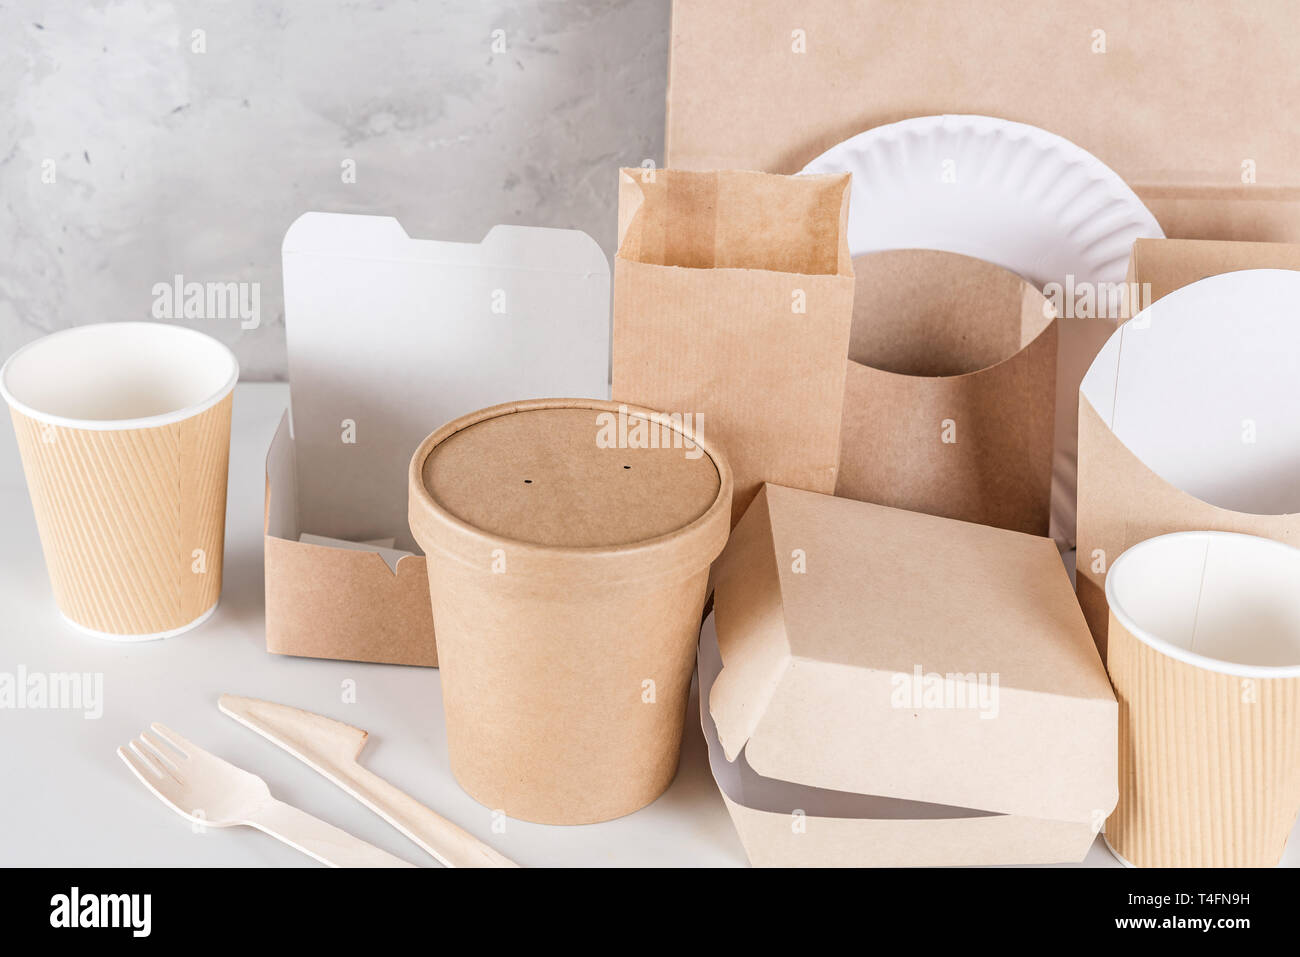 Eco Friendly Disposable Utensils Made Of Bamboo Wood And Paper On White Marble Background Draped Spoons Fork Knives Plate With Paper Cups Close U Stock Photo Alamy